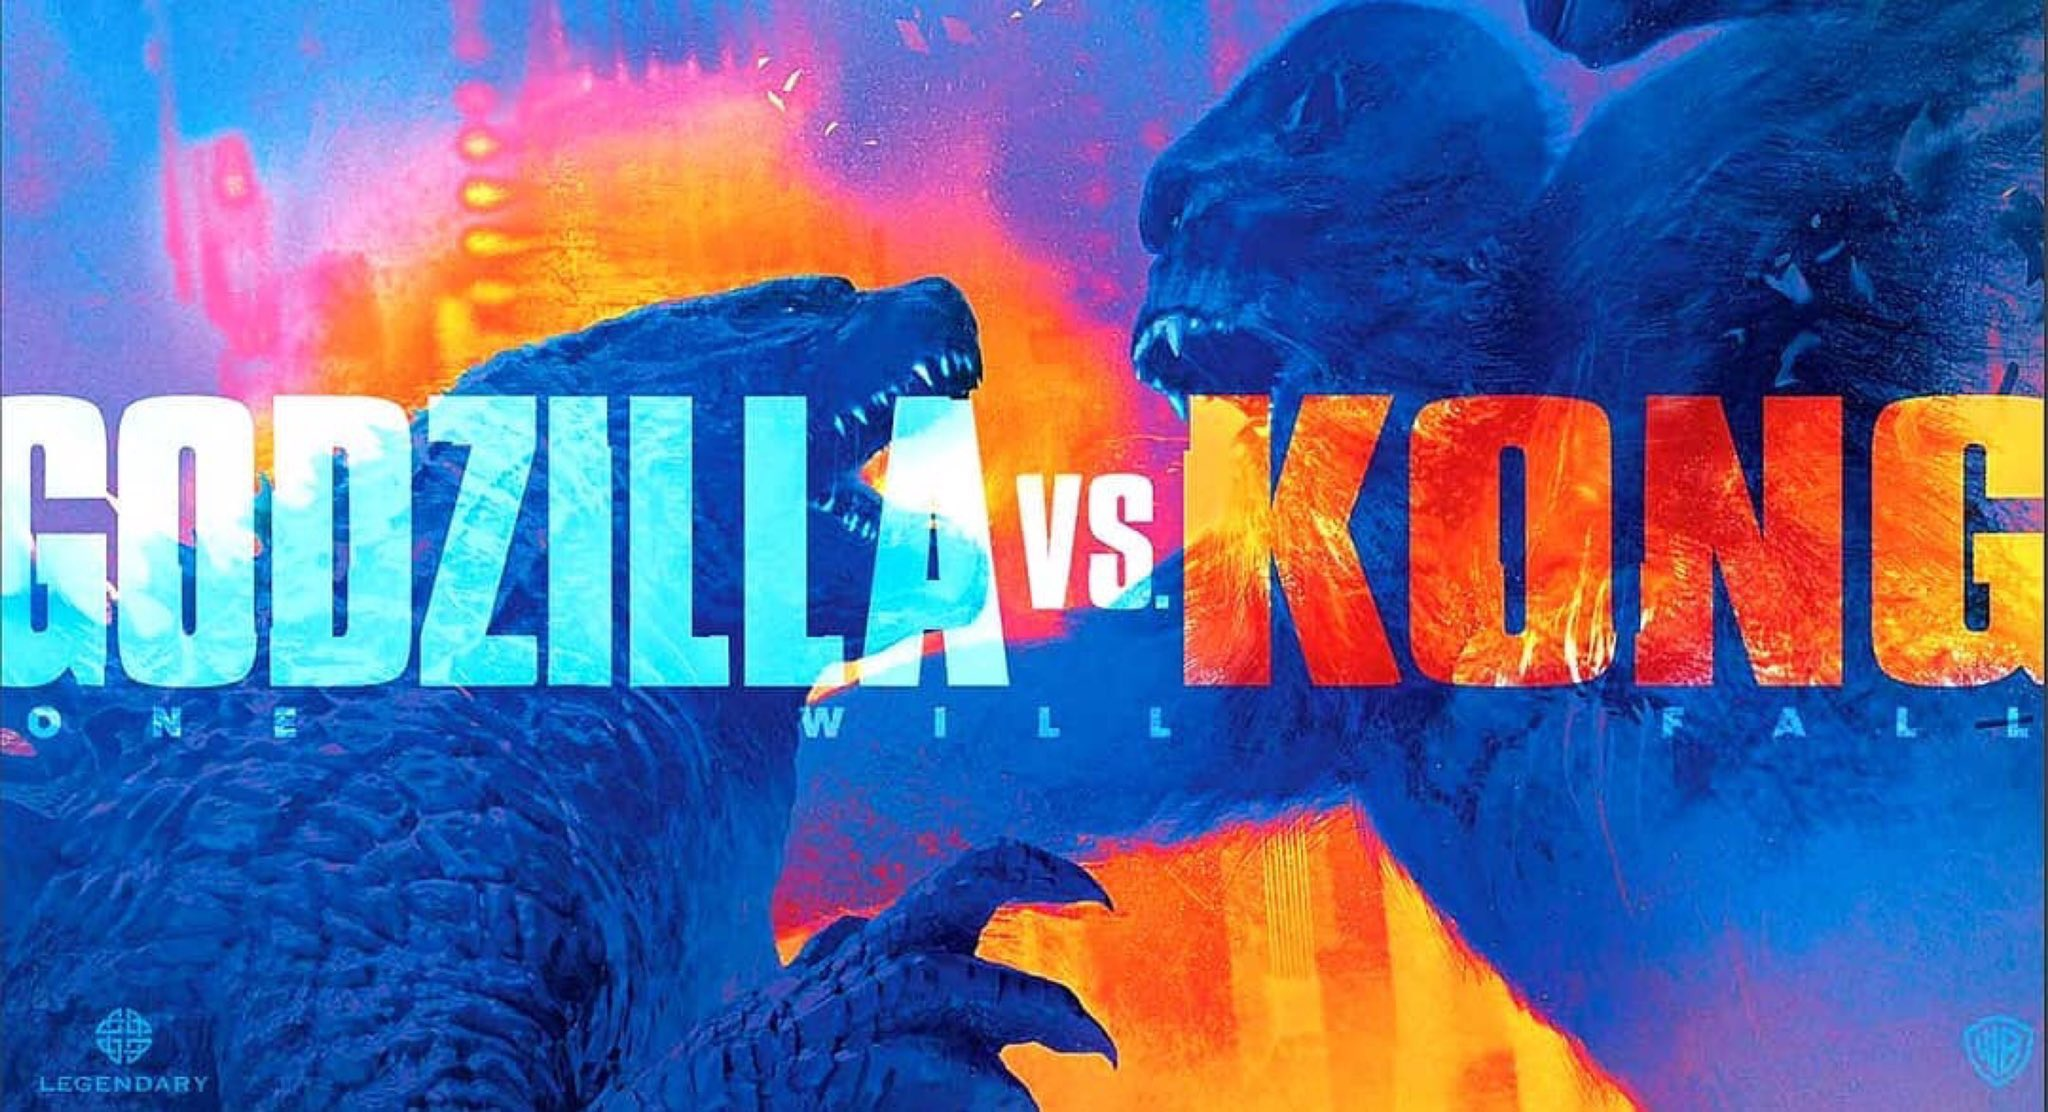 'Godzilla vs. Kong' - landscape artwork